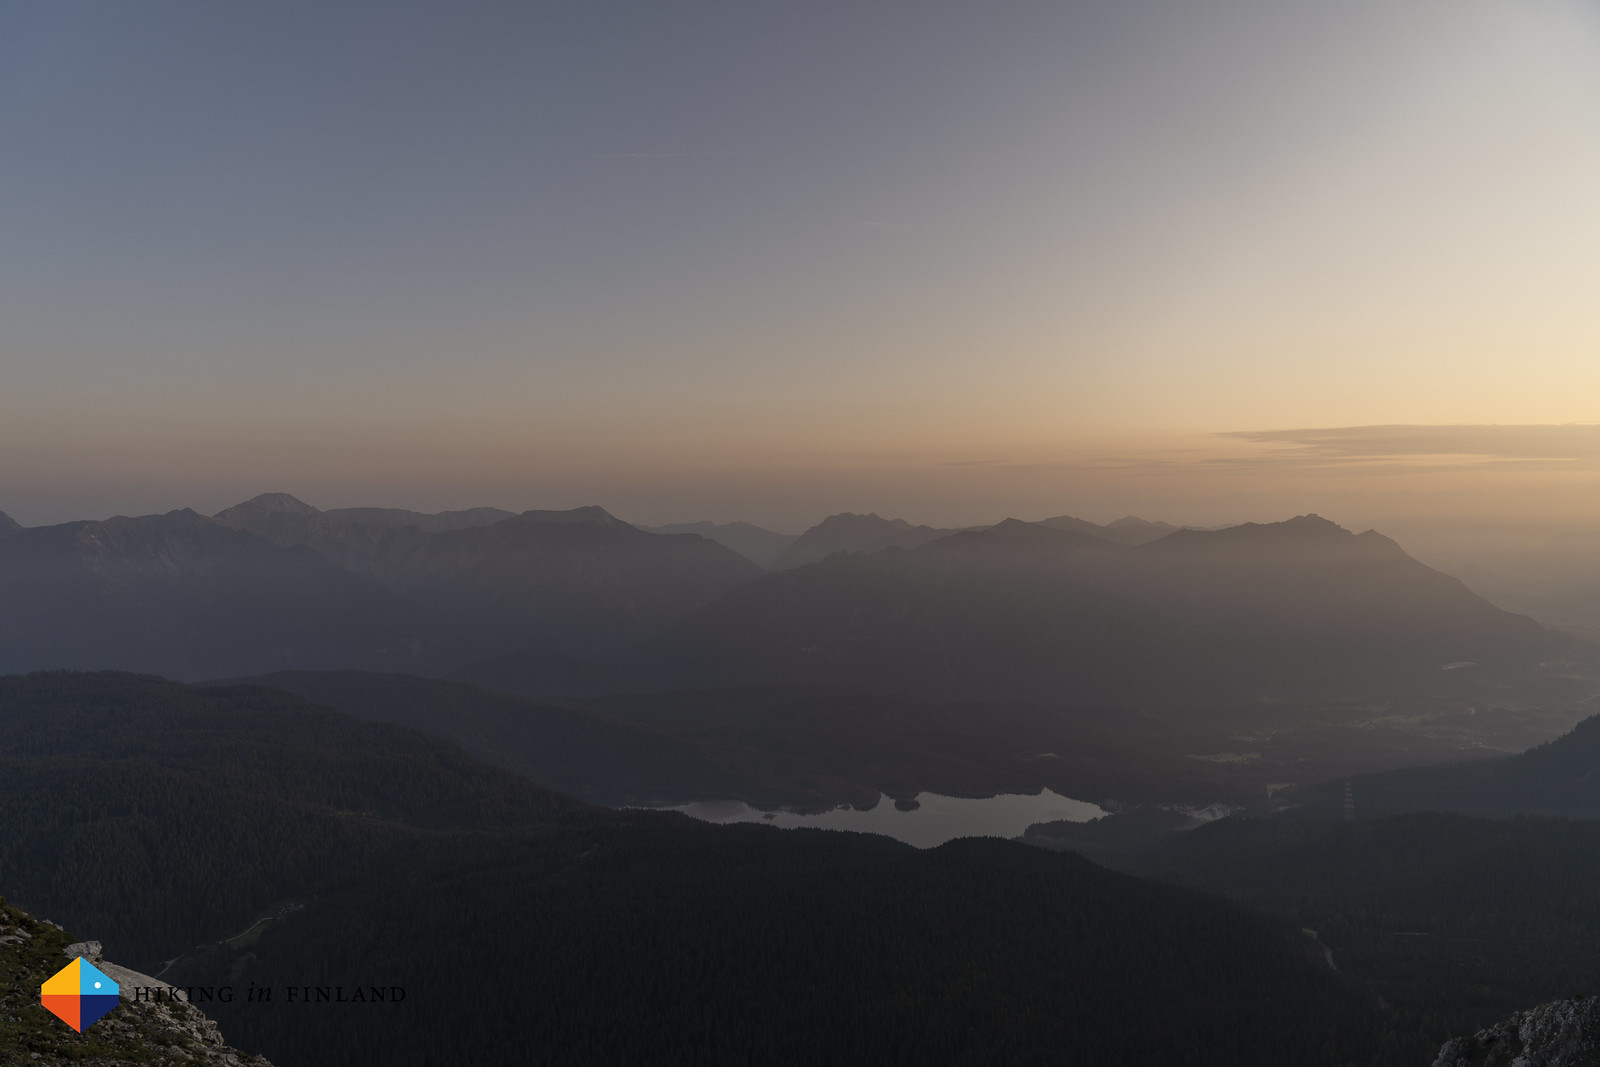 Dawn over the Eibsee